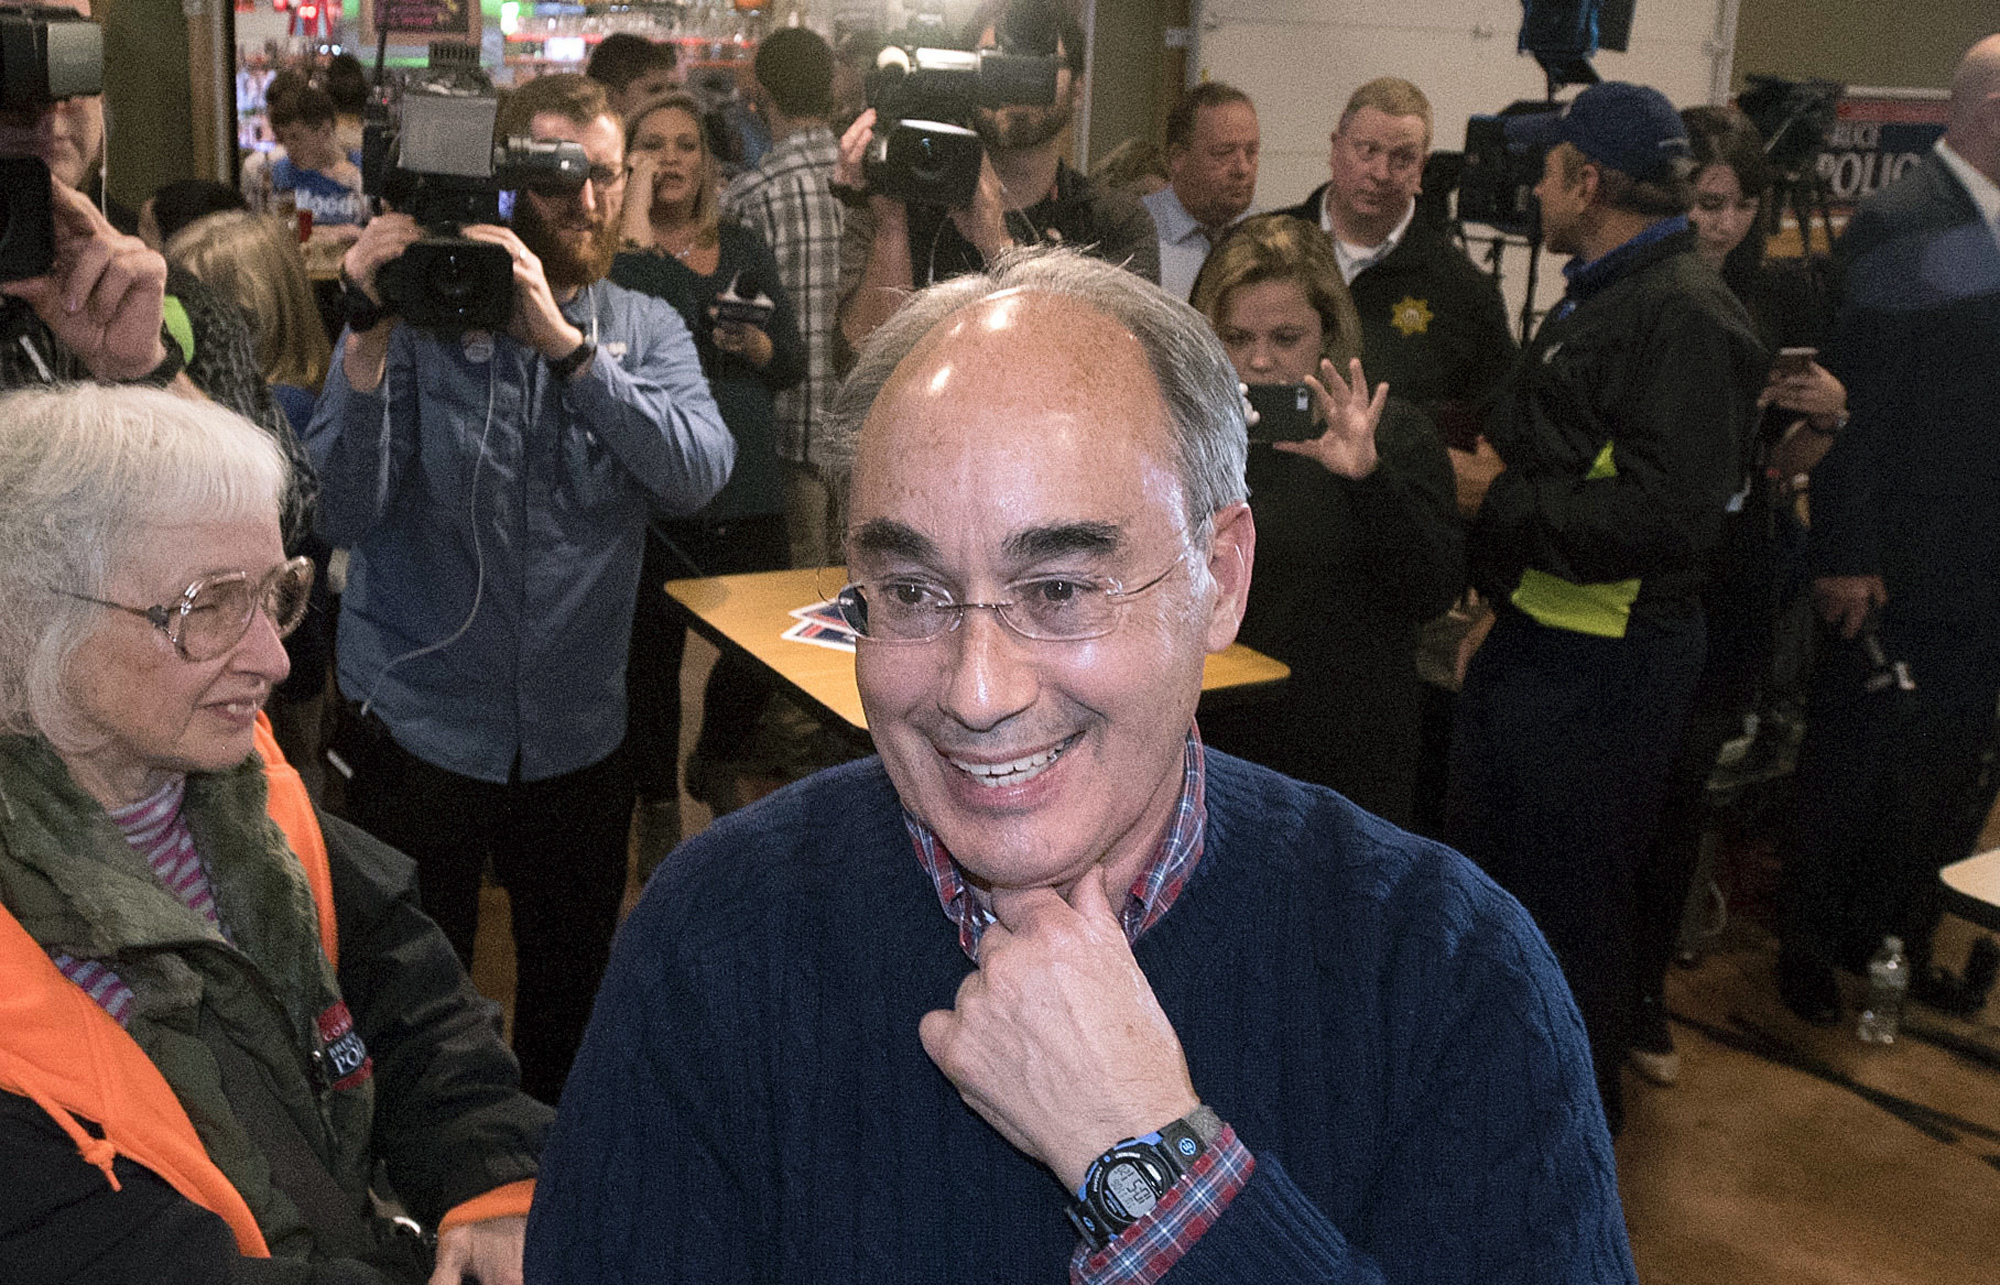 BANGOR, MAINE � 11/06/2018 � Rep. Bruce Poliquin is at his campaign party at Dysart�s in Bangor Tuesday night.Gabor Degre | BDN /// -- *Lindsay Putnam*Digital Engagement Editorm: 207.641.7271 t: @lindsay_putnam lputnam@bangordailynews.combangordailynews.com